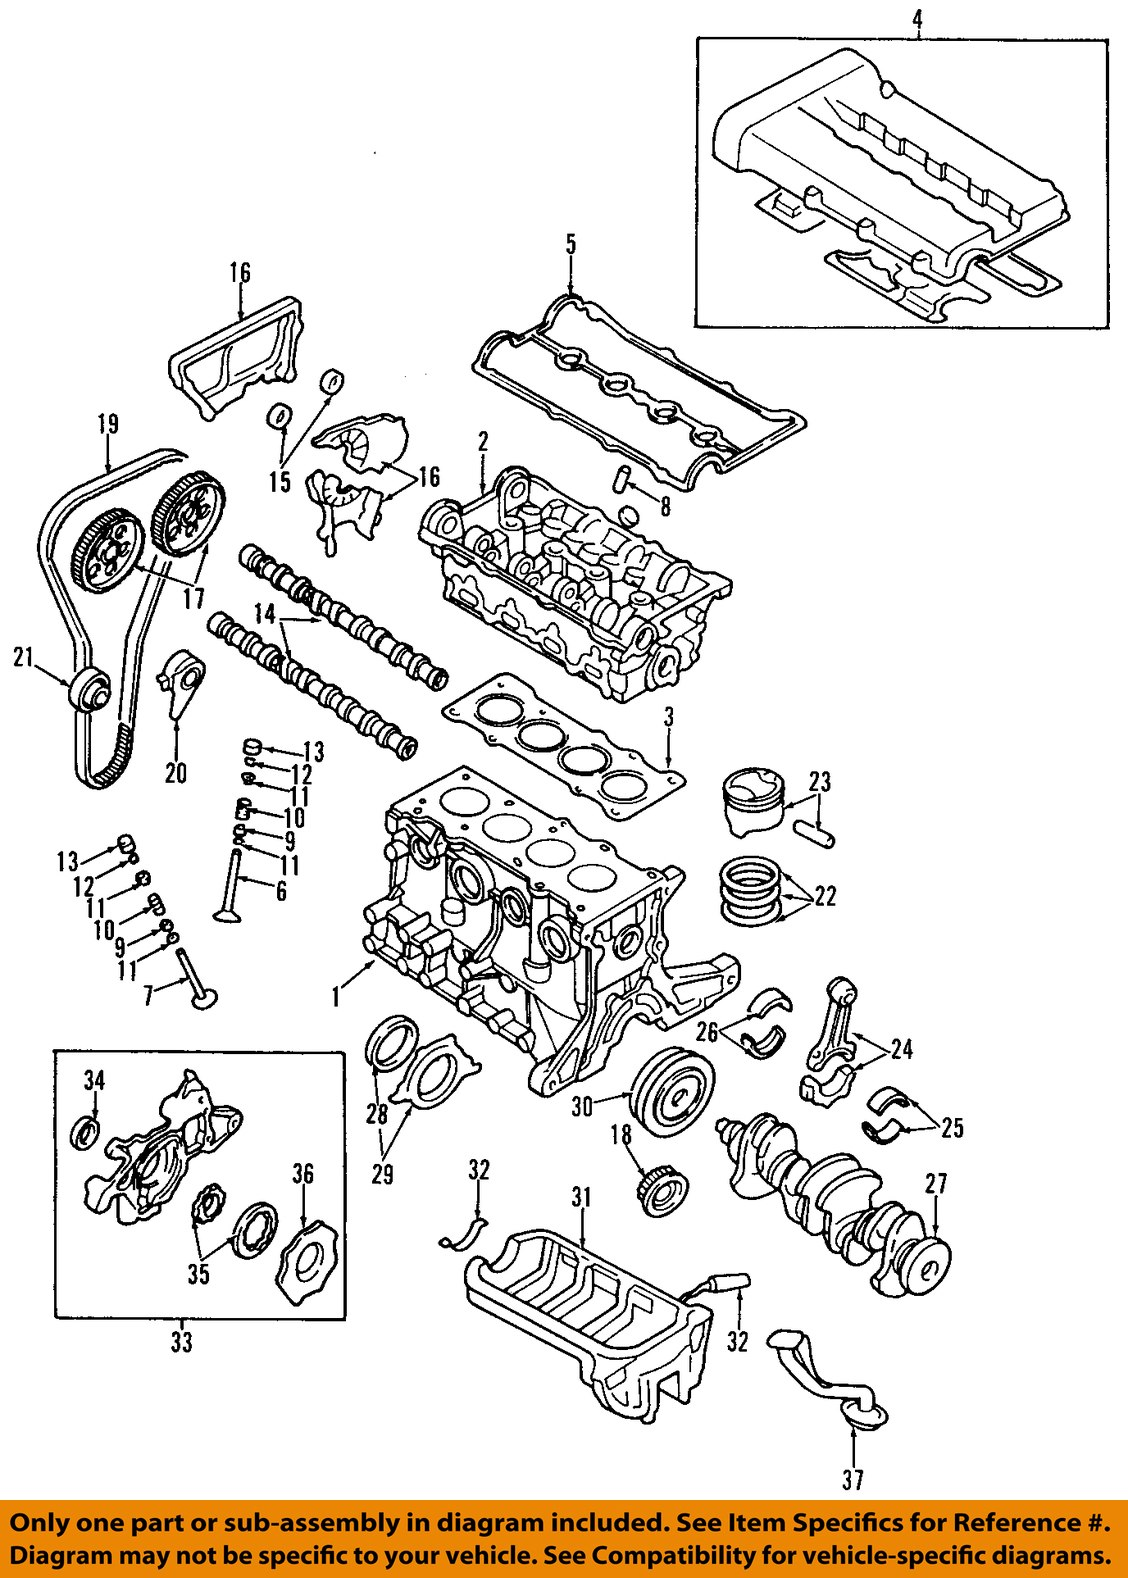 2007 Kia Rio Engine Diagram Trusted Wiring Diagrams 2005